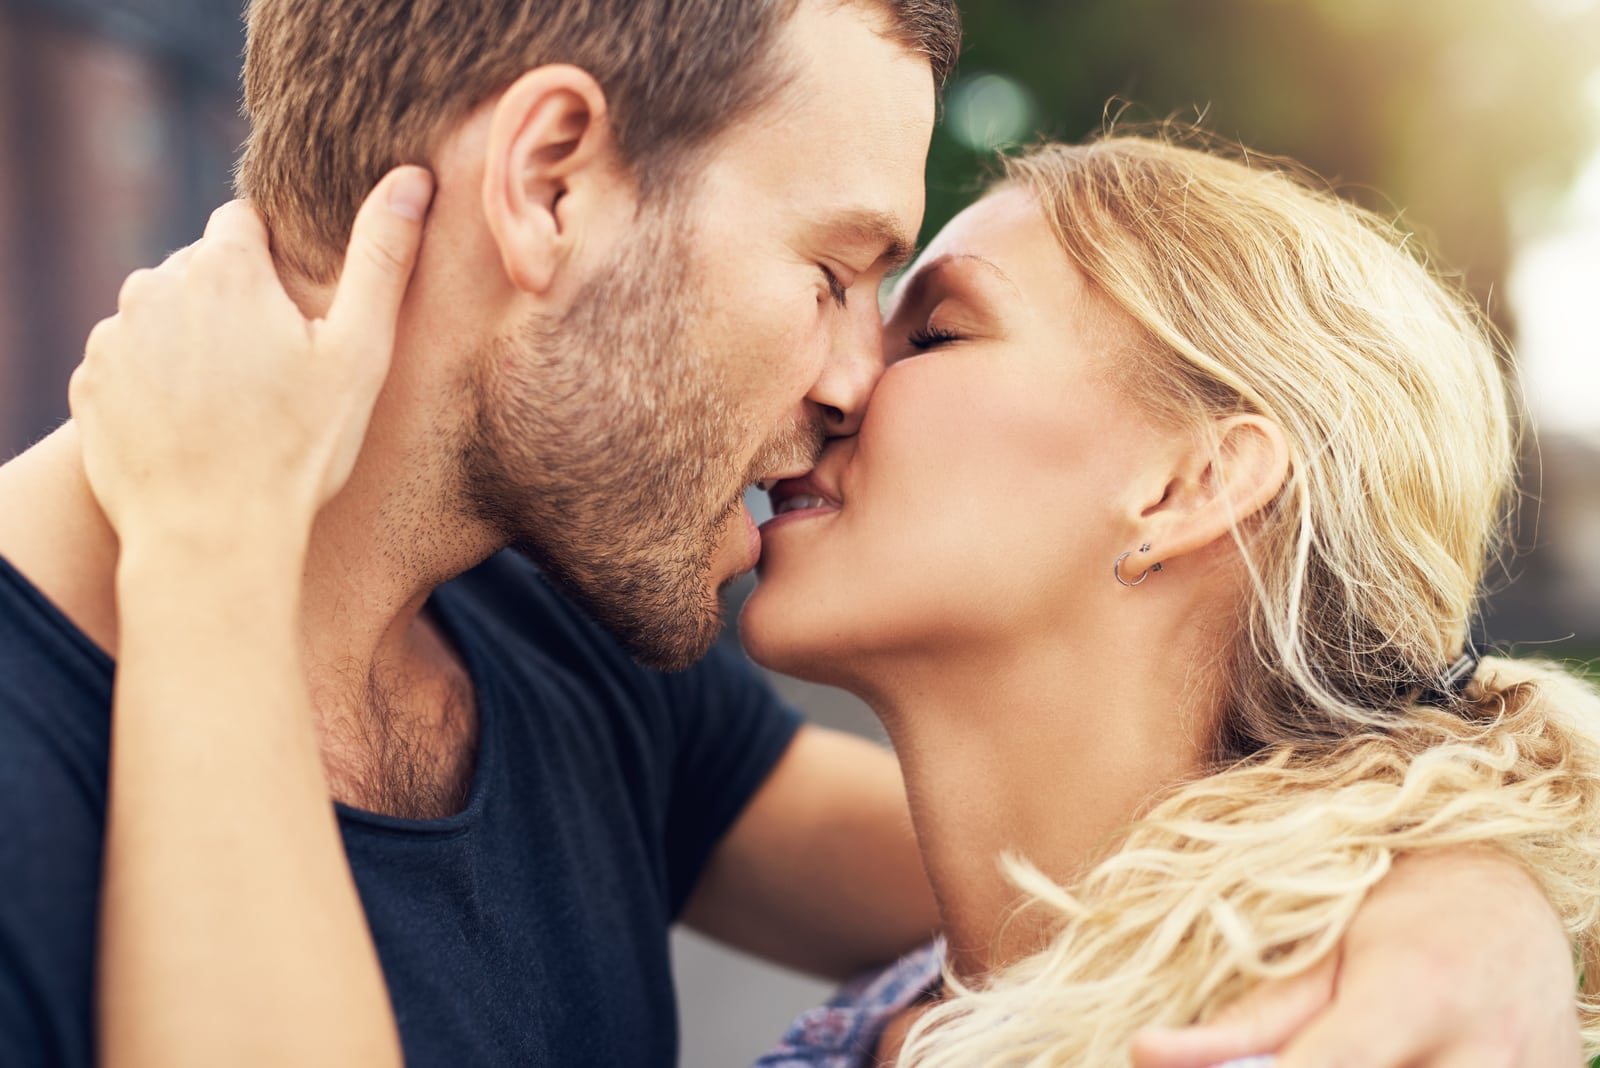 couple deeply in love sharing a romantic kiss